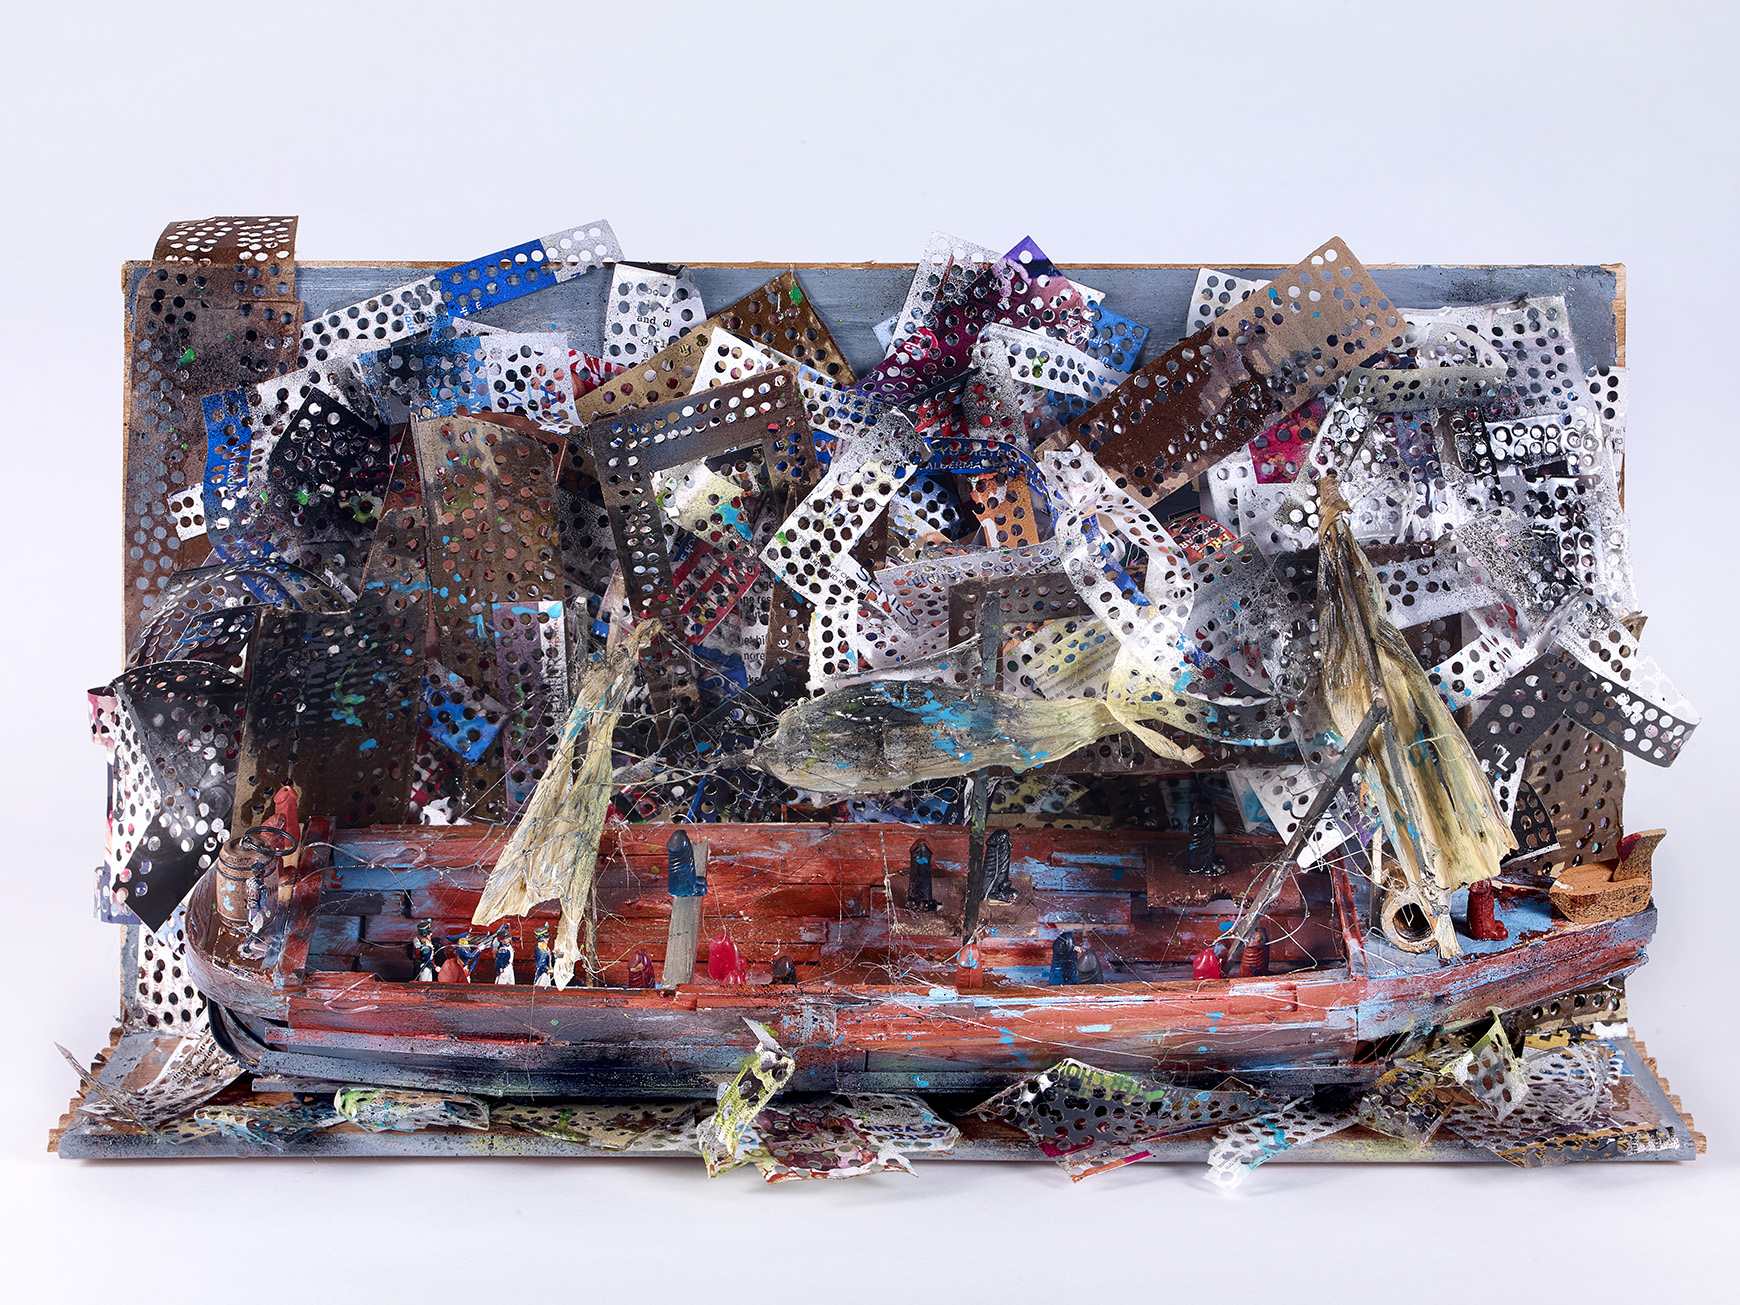 Marvin Tate (American, b. 1959).  Lake Front Apparition , 2019. Found objects, 16 ½ x 30 ¼ x 14 in. Courtesy of the artist. Photo © John Faier